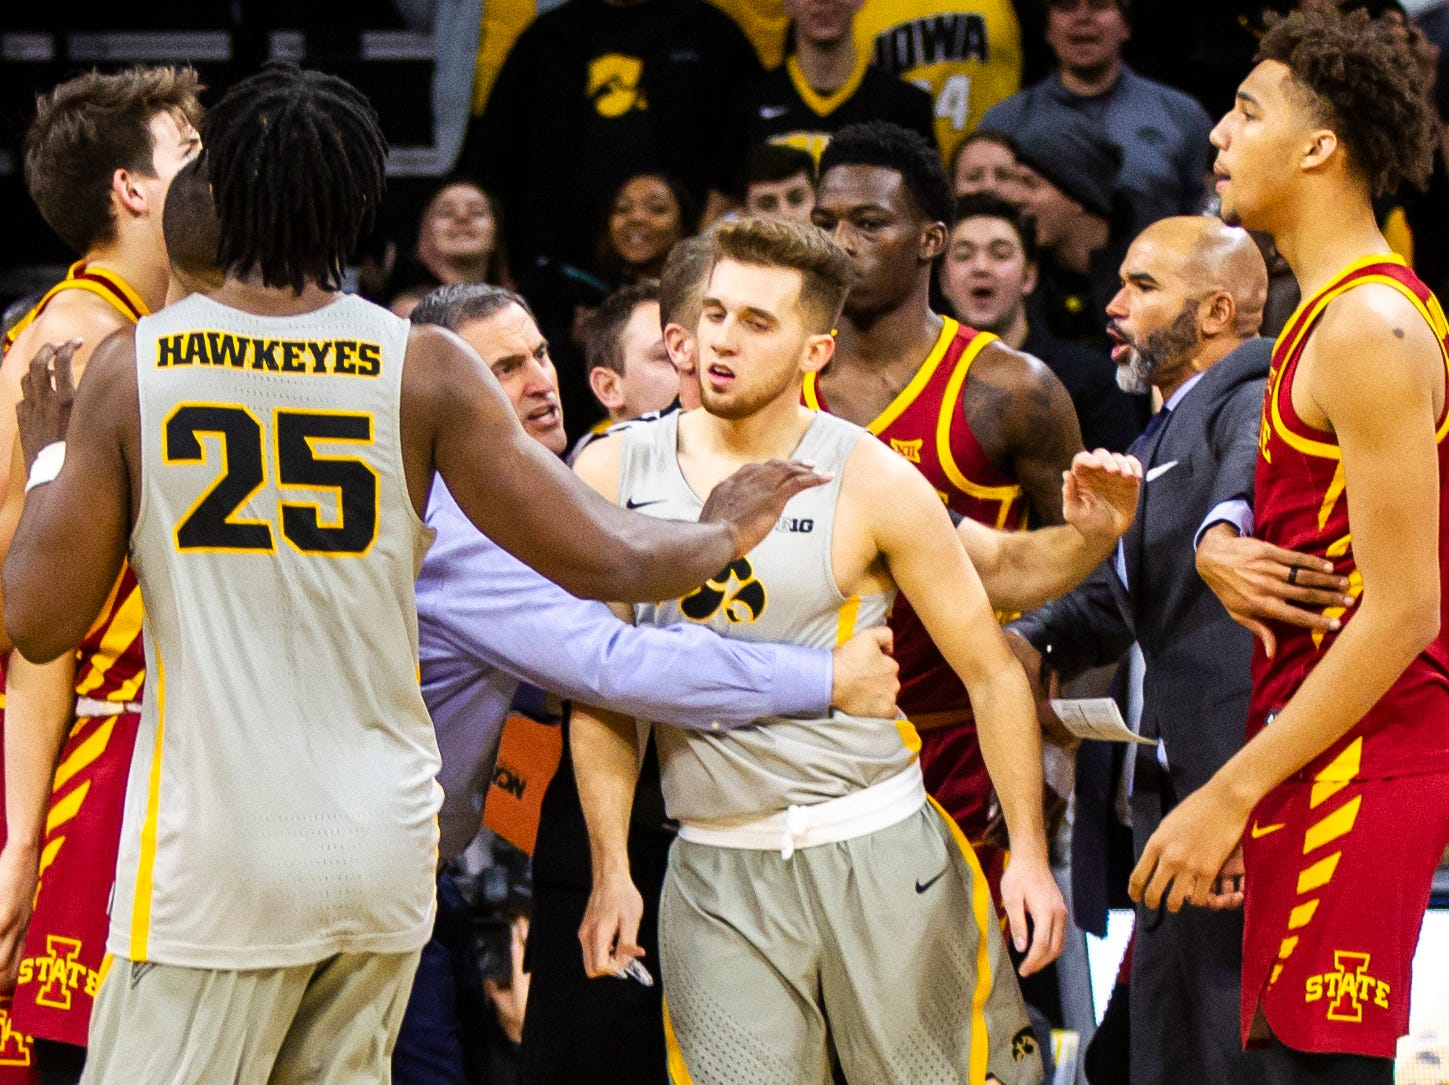 Iowa State head coach Steve Prohm grabs Iowa guard Jordan Bohannon (3) after the buzzer of a NCAA Cy-Hawk series men's basketball game on Thursday, Dec. 6, 2018, at Carver-Hawkeye Arena in Iowa City.